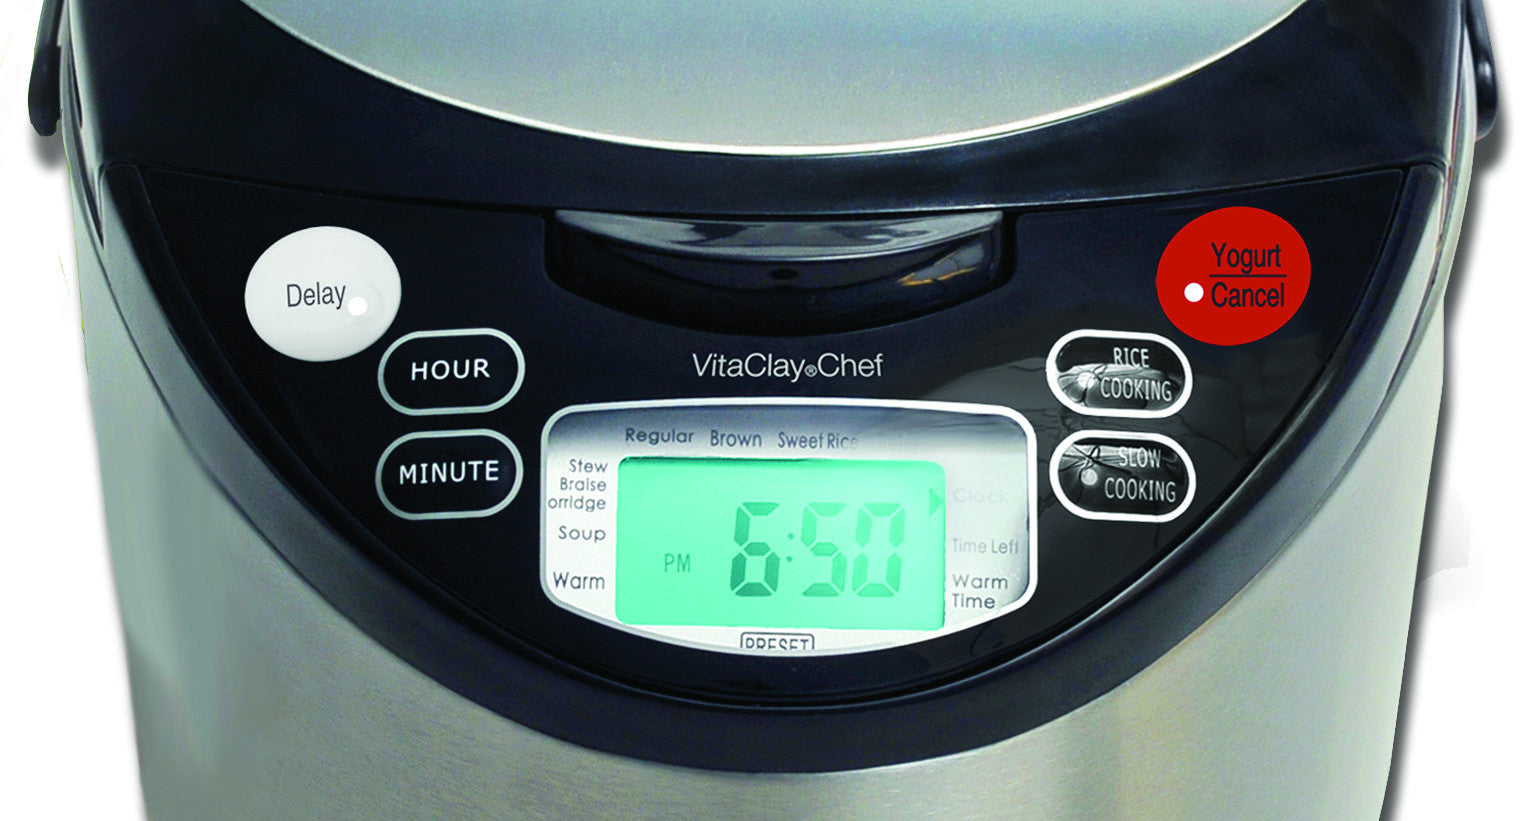 Setting the Delay Cooking Timer on the (Oval) VitaClay Multi-Cooker